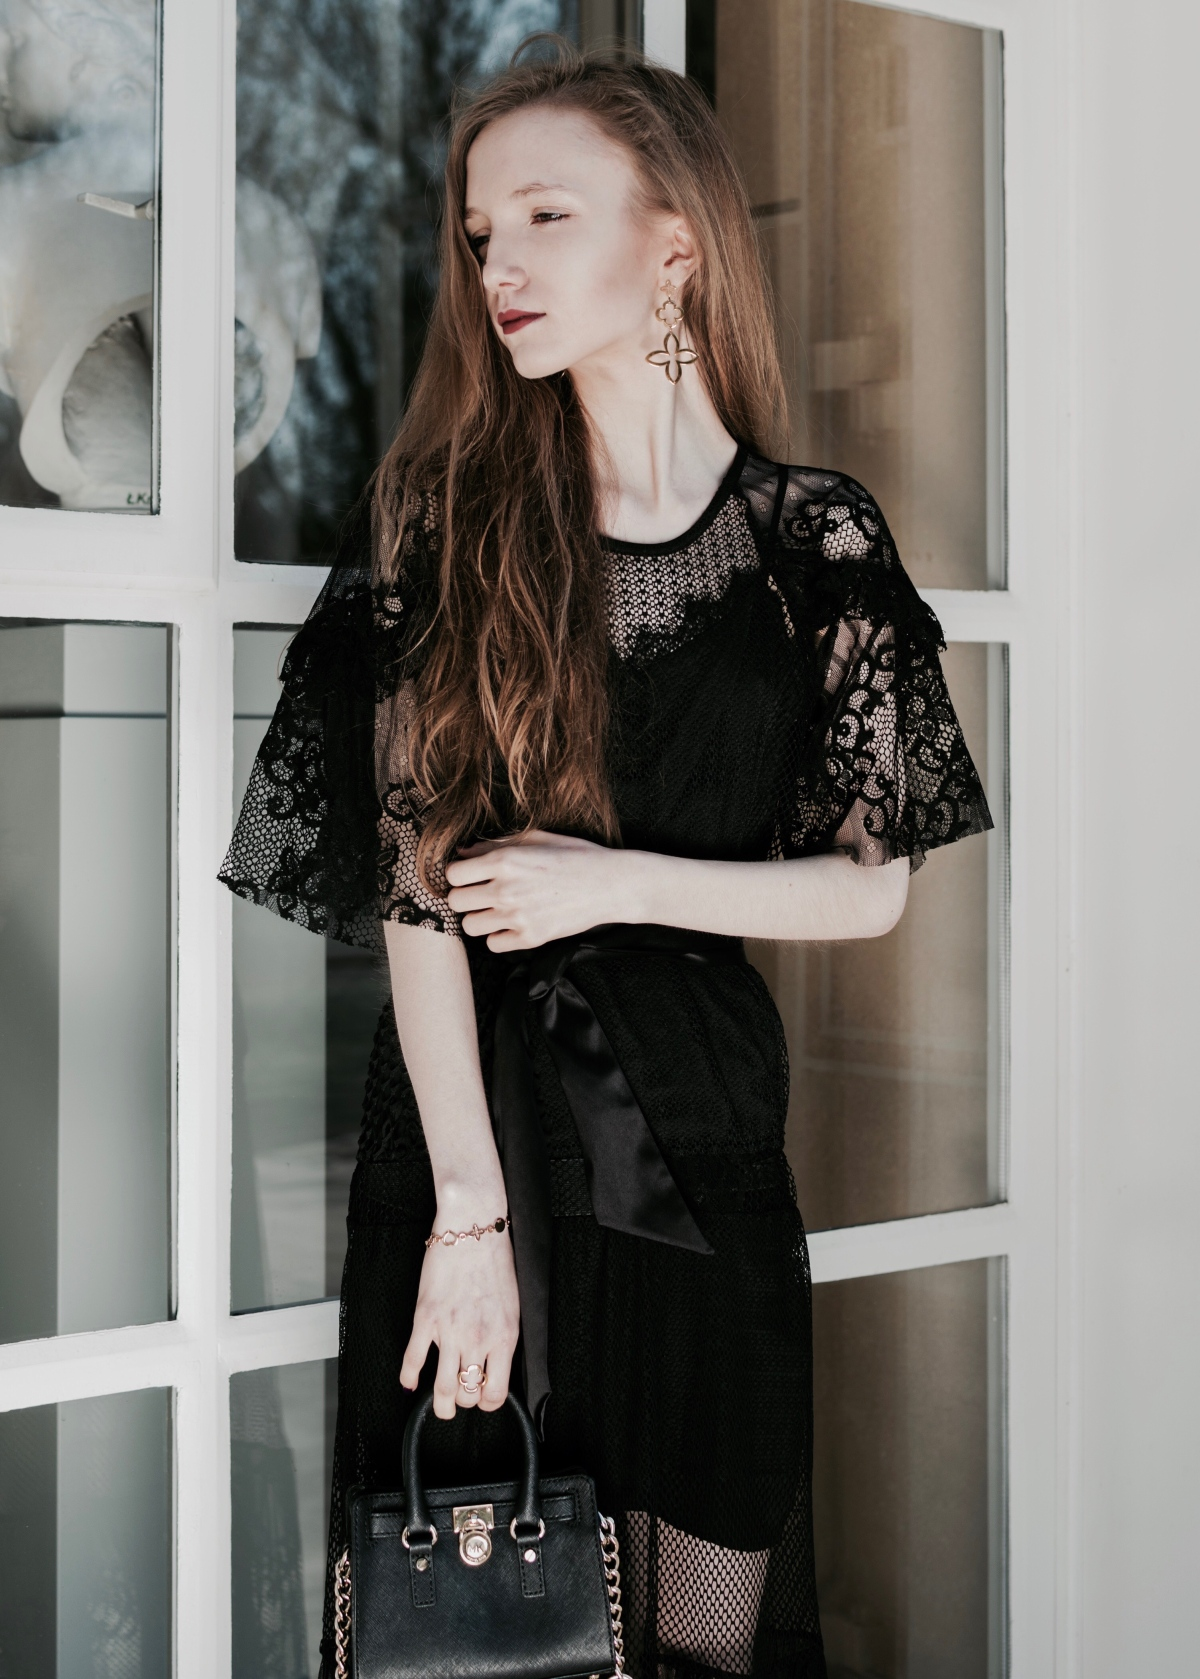 Long black lace dress in Łazienki Palace Gardens